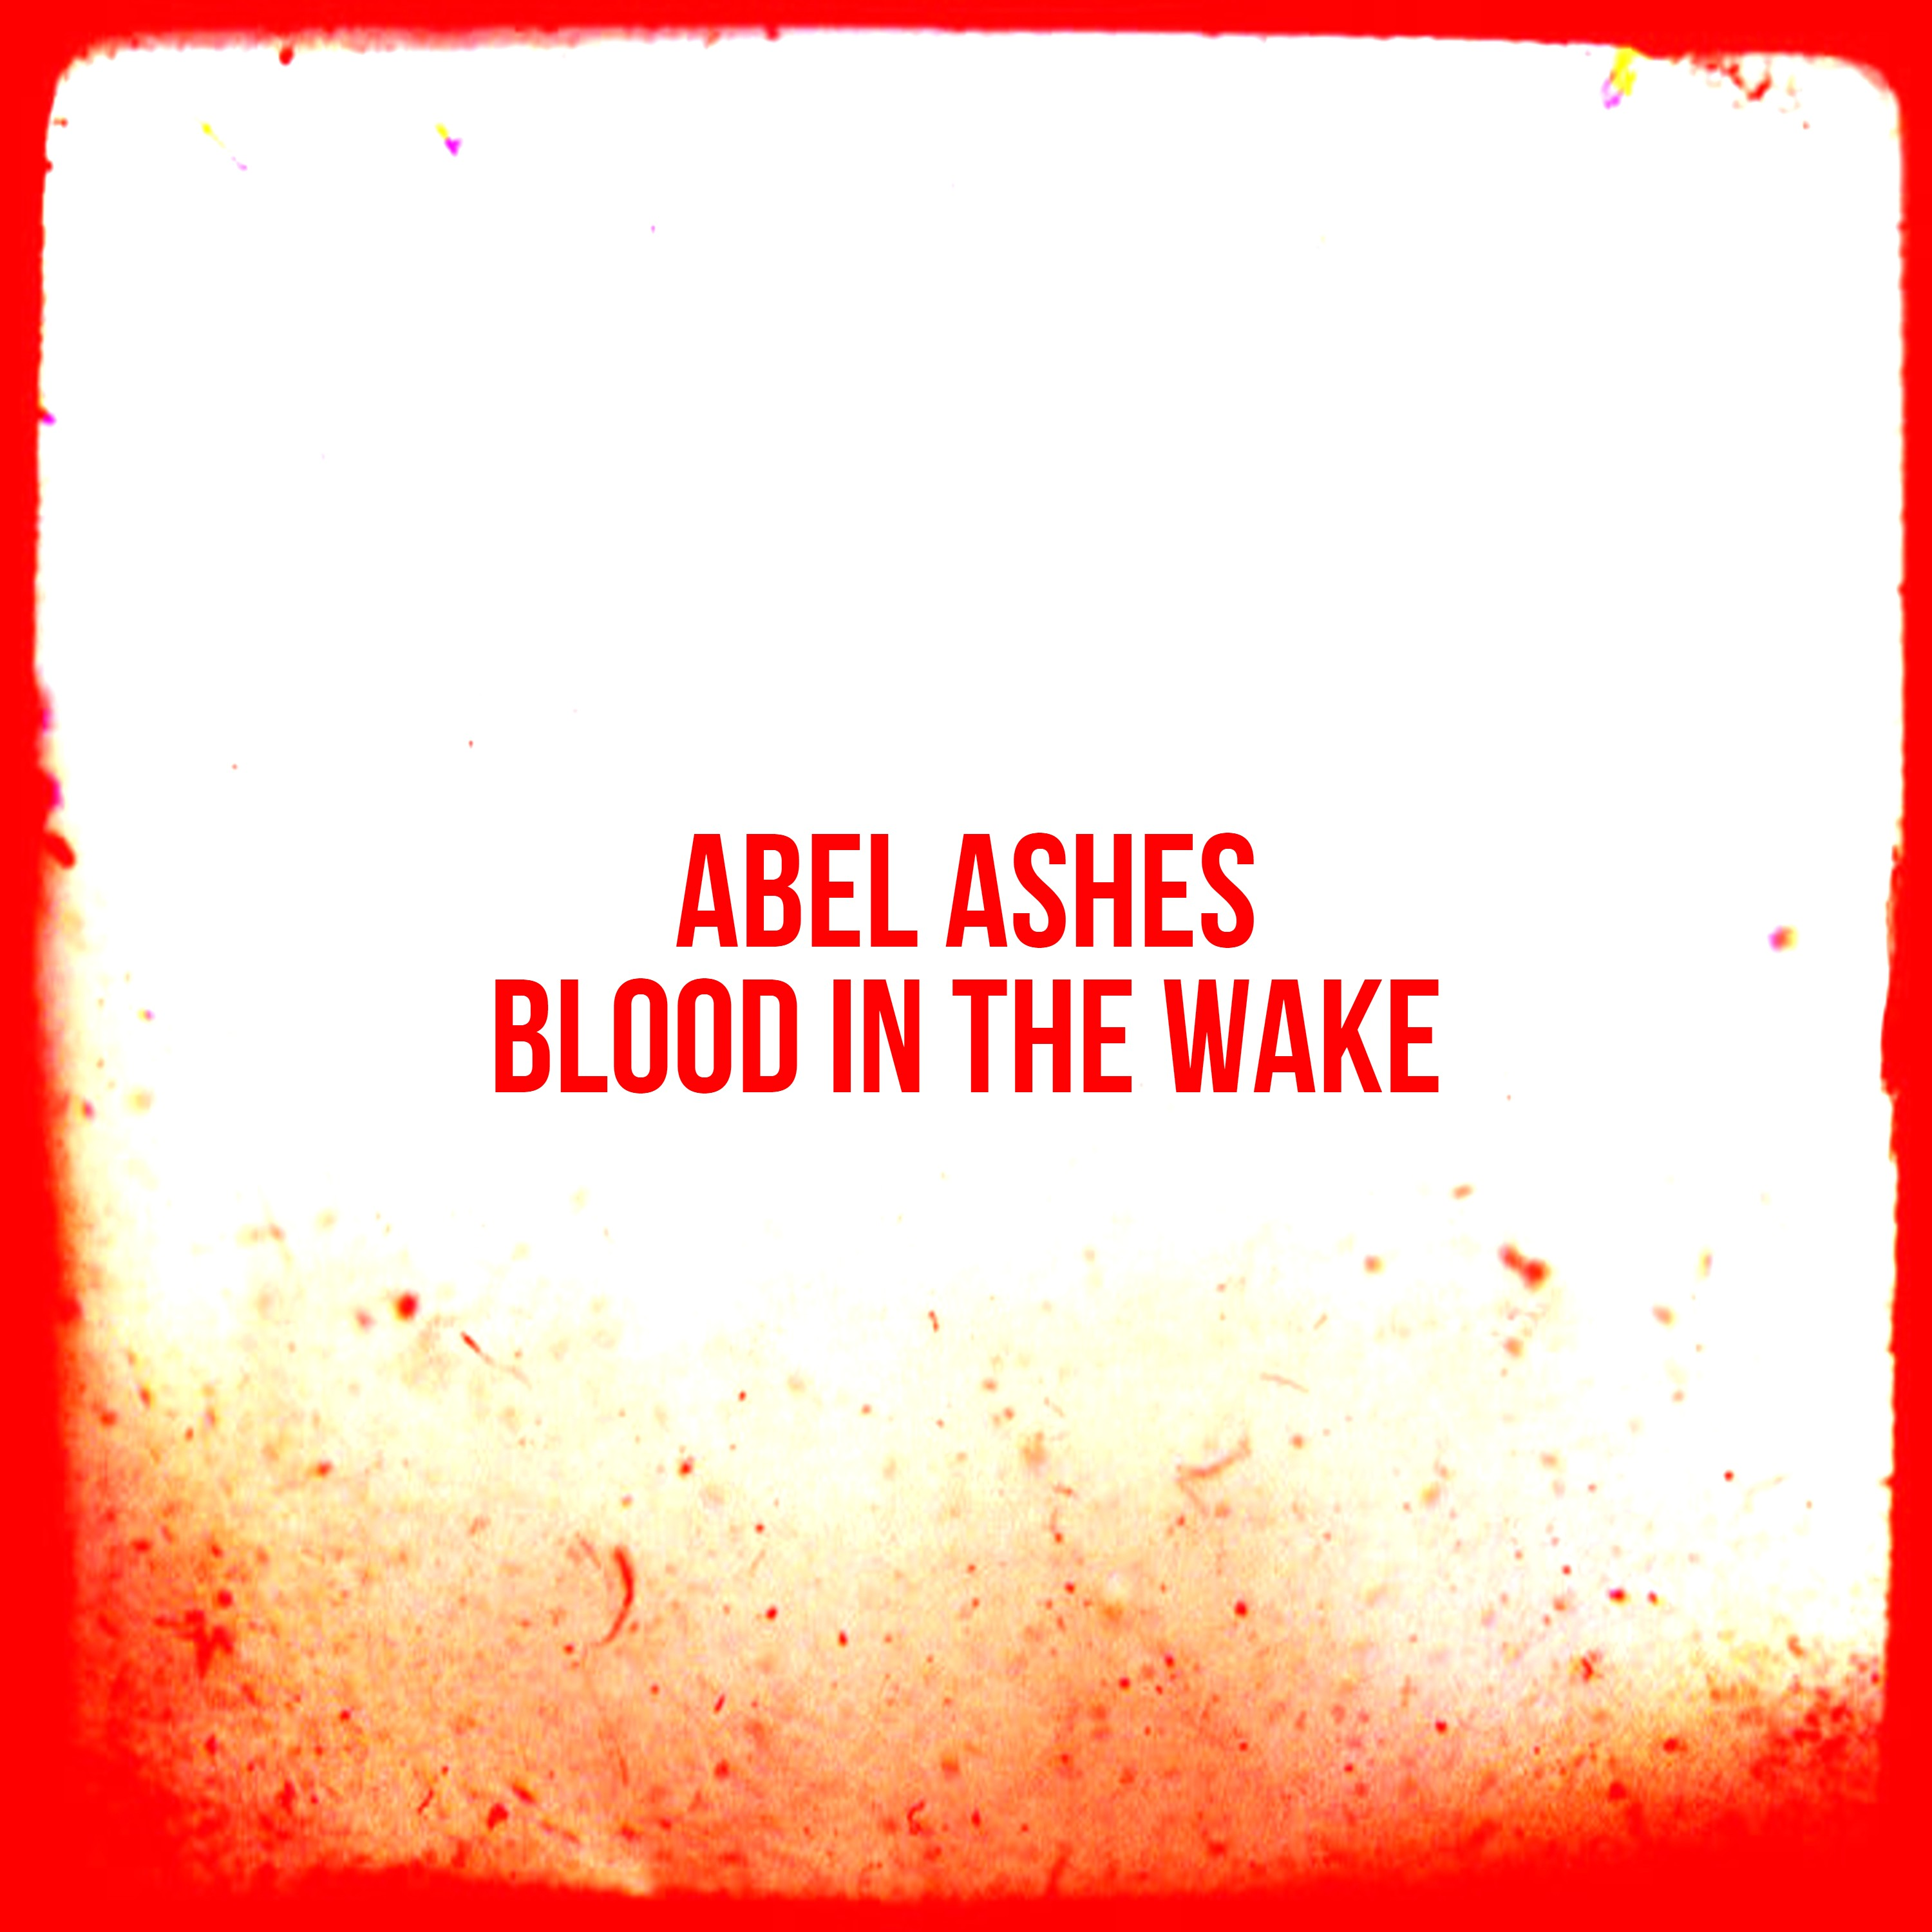 Abel Ashes Blood in the Wake 3000 by 3000 (1)